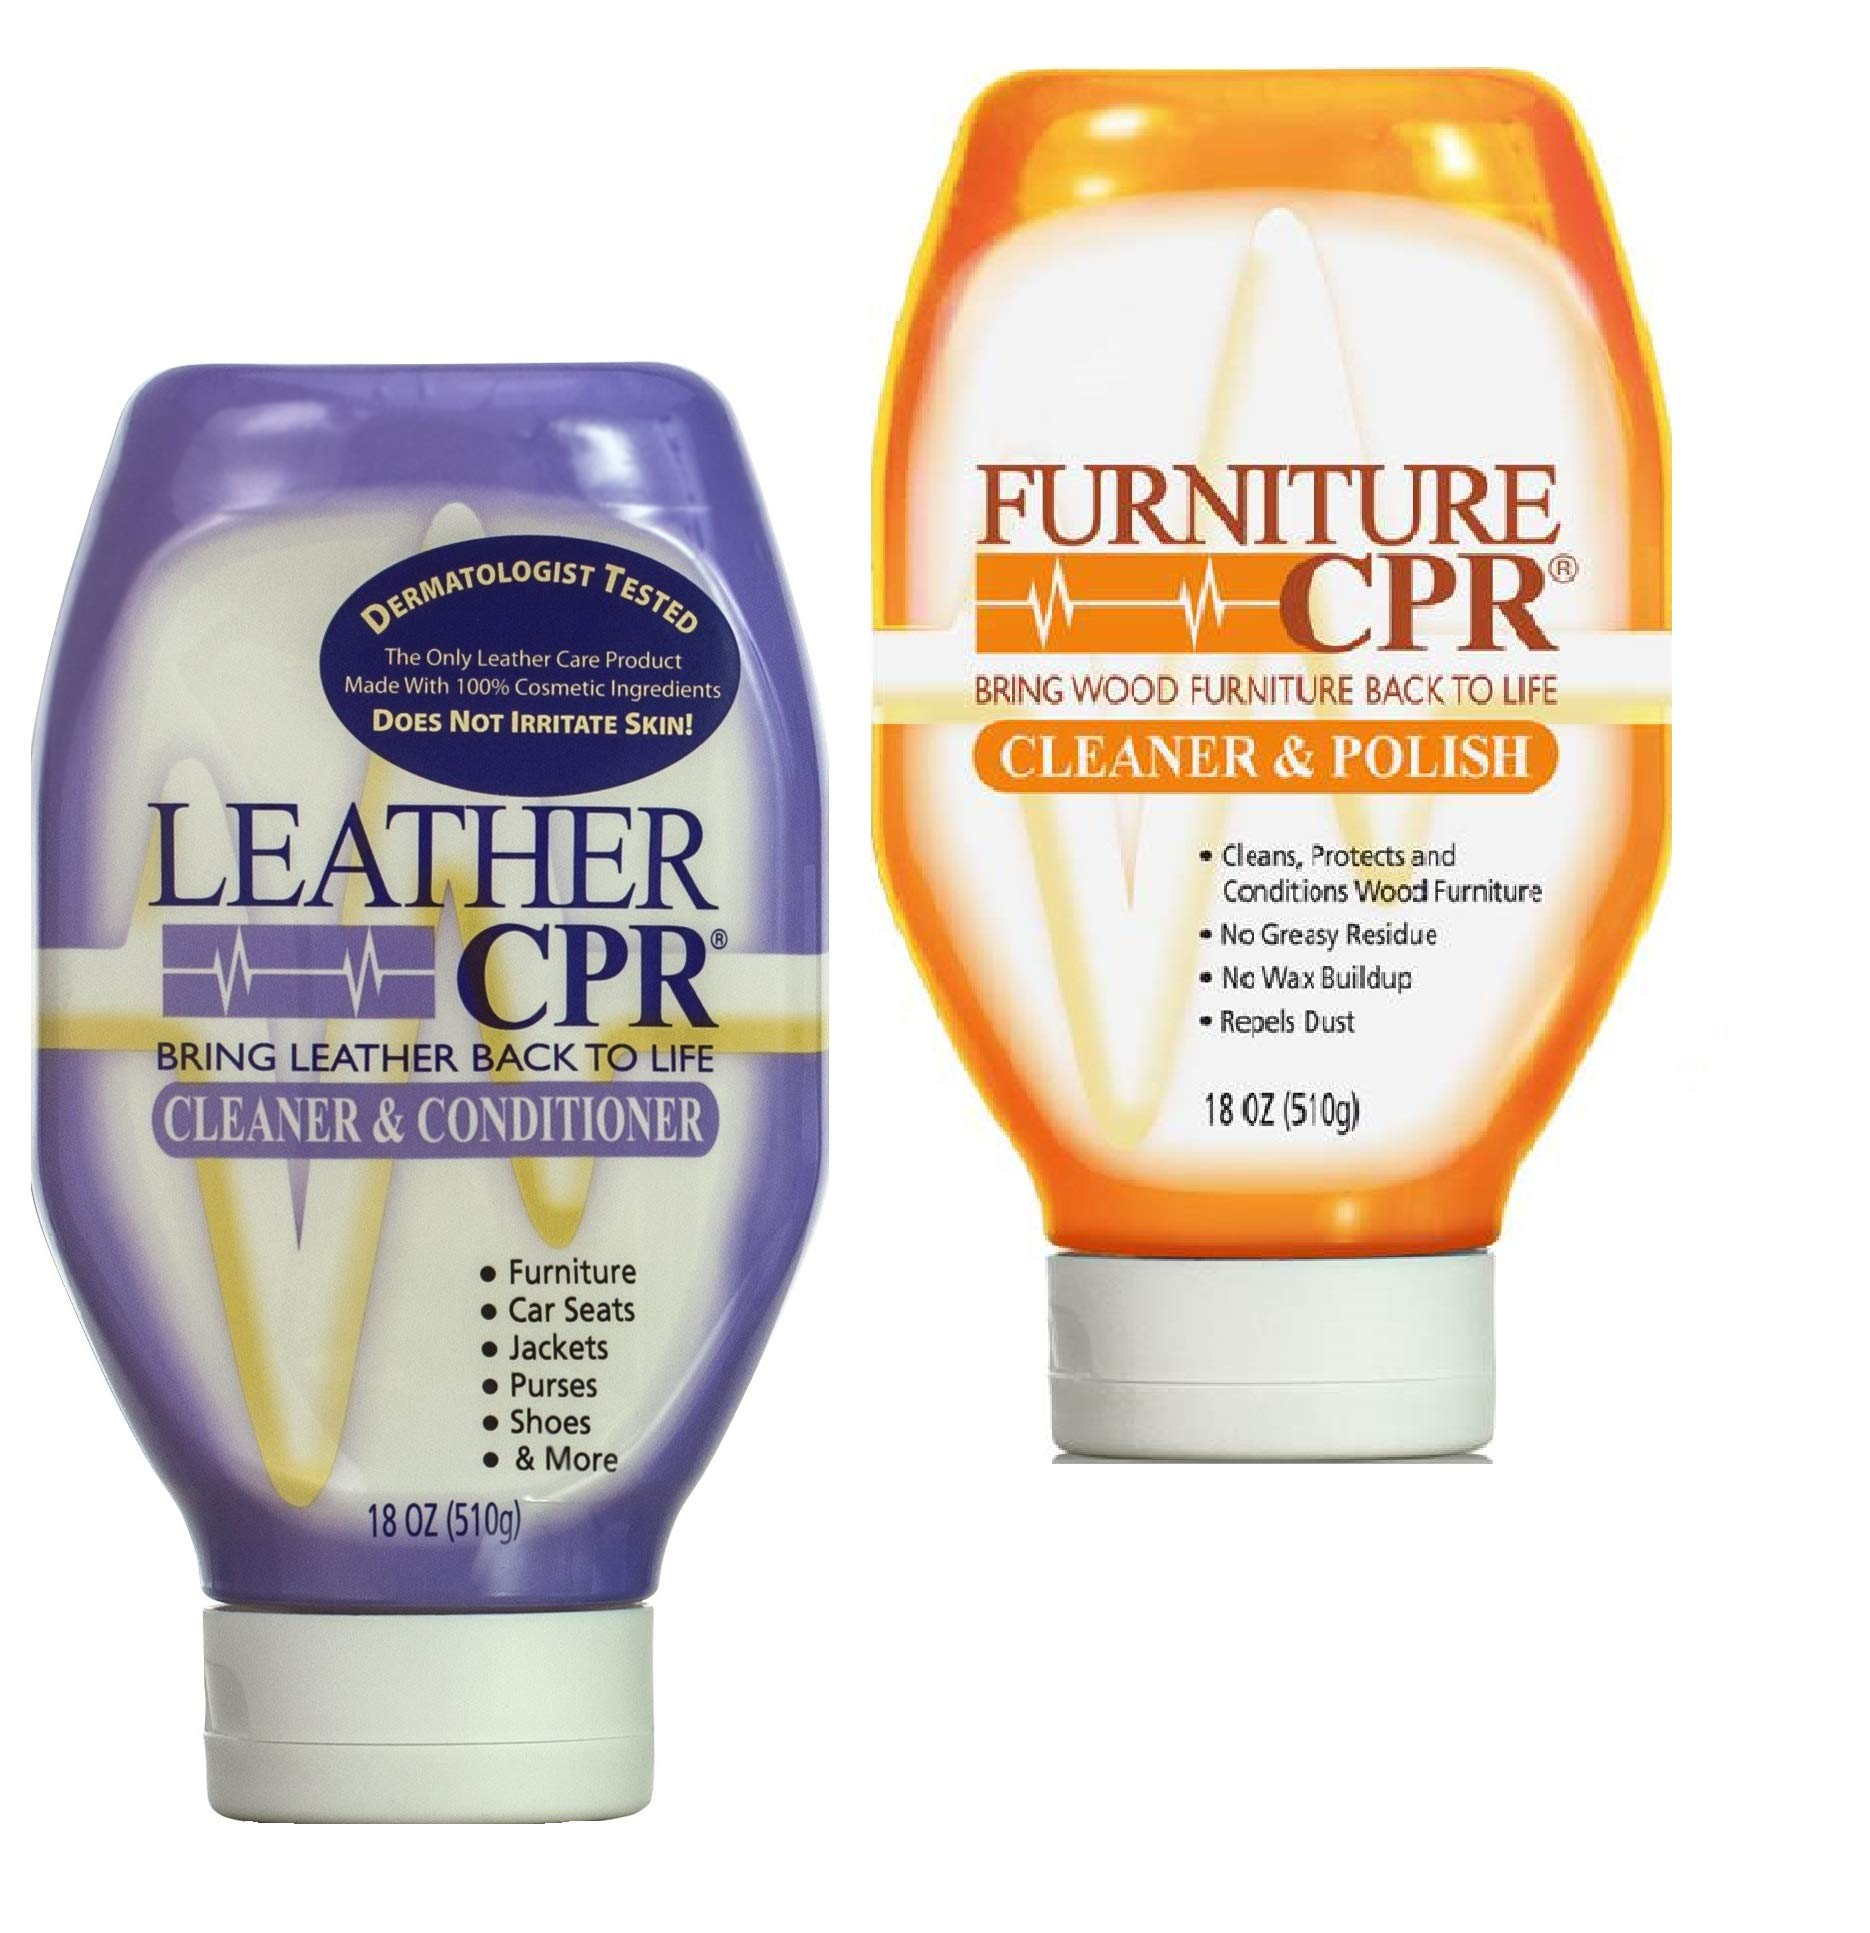 CPR Leather Furniture Cleaning Variety 2PK - Clean & Condition Leather, and Spruce Up Your Wood Furniture with This 2-in-1 Savings by CPR